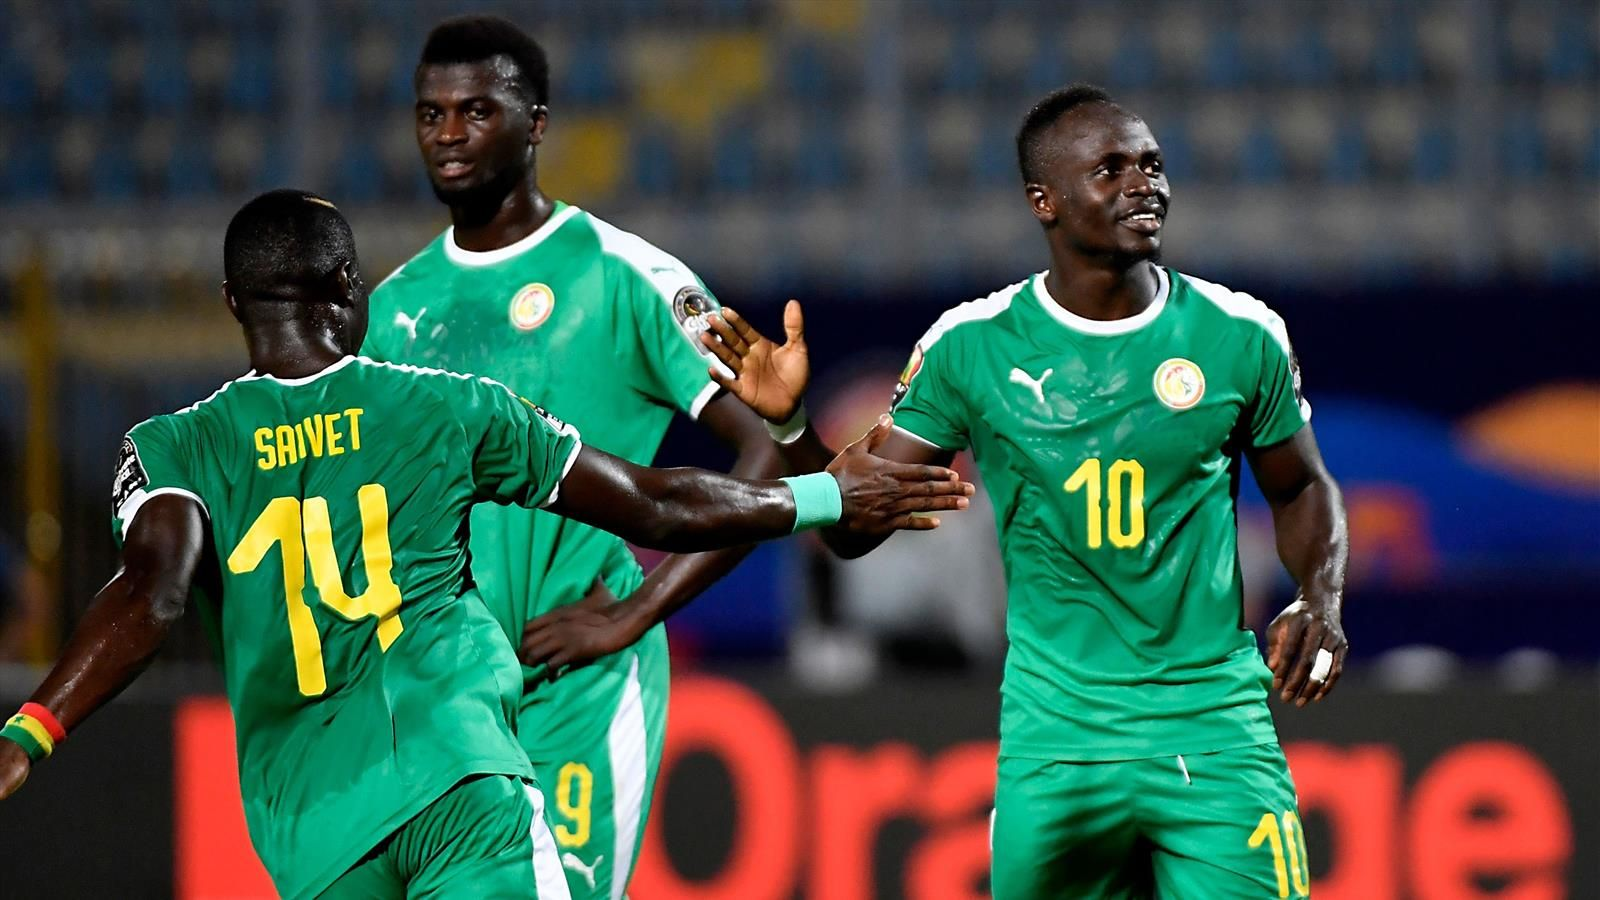 Sadio Mane and a goal from Ismaila Sarr was all Senegal needed to beat Kenya in their Group C